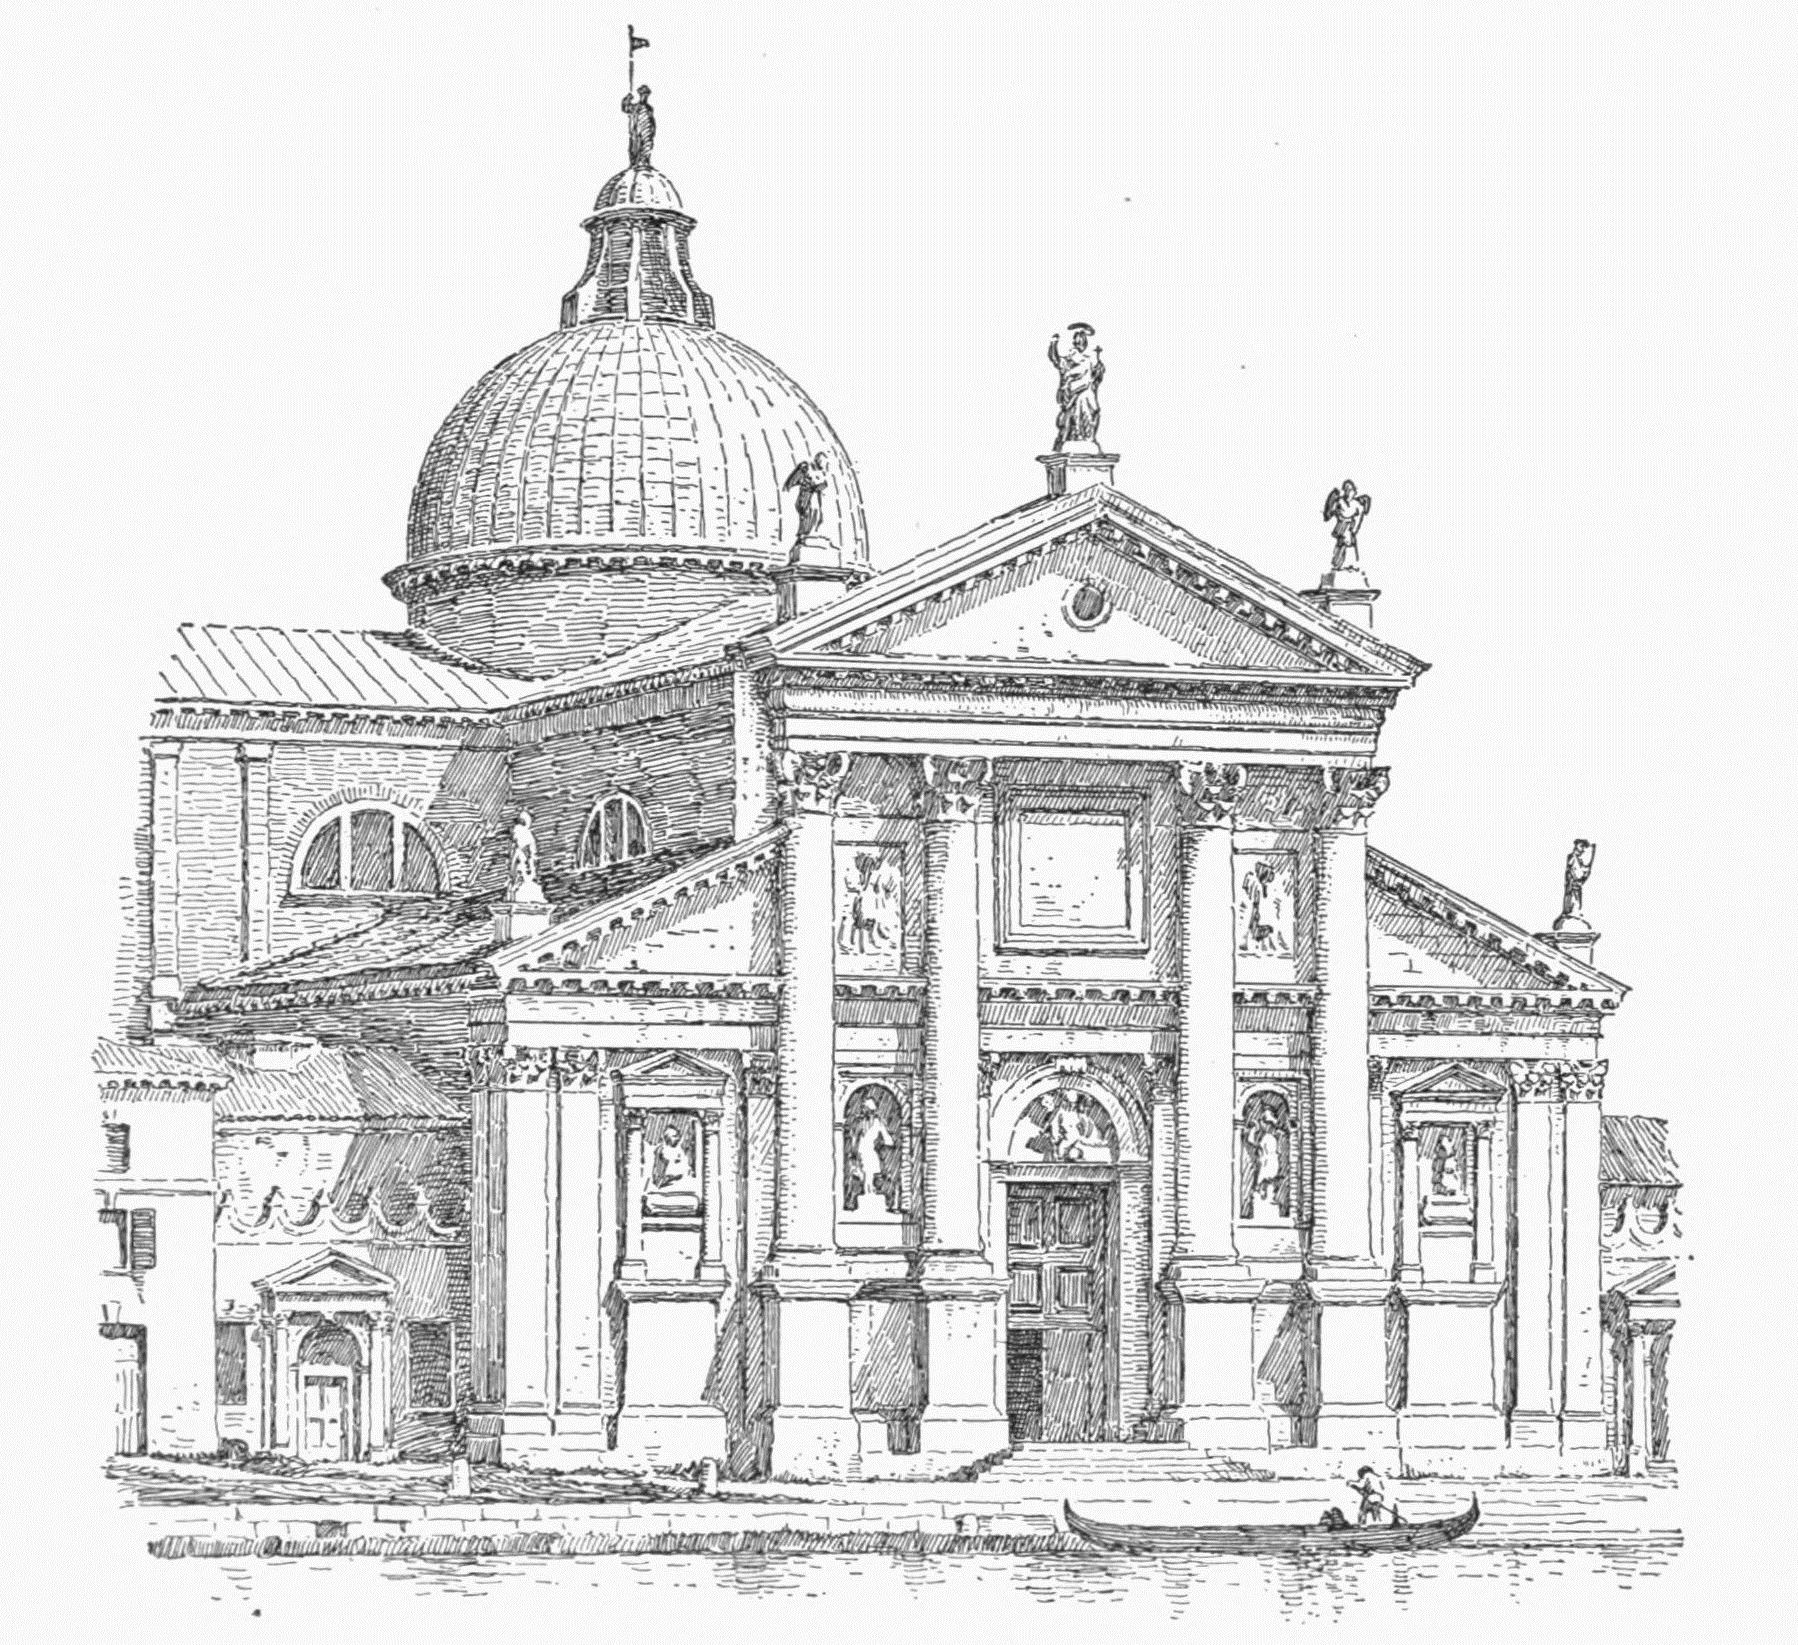 Renaissance Architecture: File:Character Of Renaissance Architecture 0129.jpg